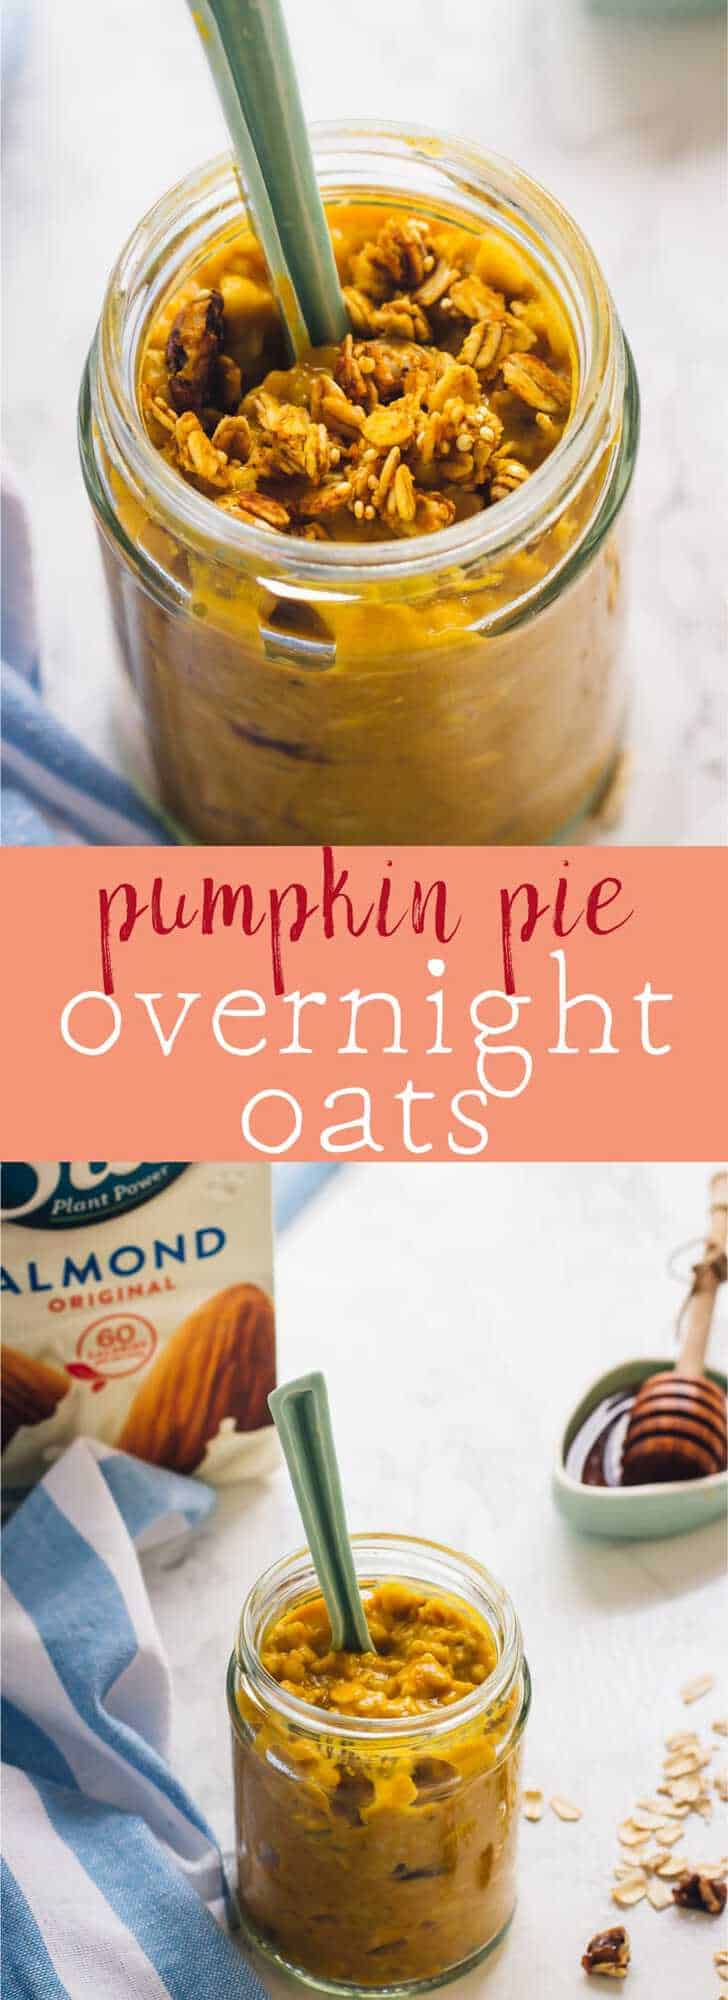 These Pumpkin Pie Overnight Oats are your easiest breakfast ever! They require only 5 minutes of prep and are delicious, filling and so nutritious! via https://jessicainthekitchen.com